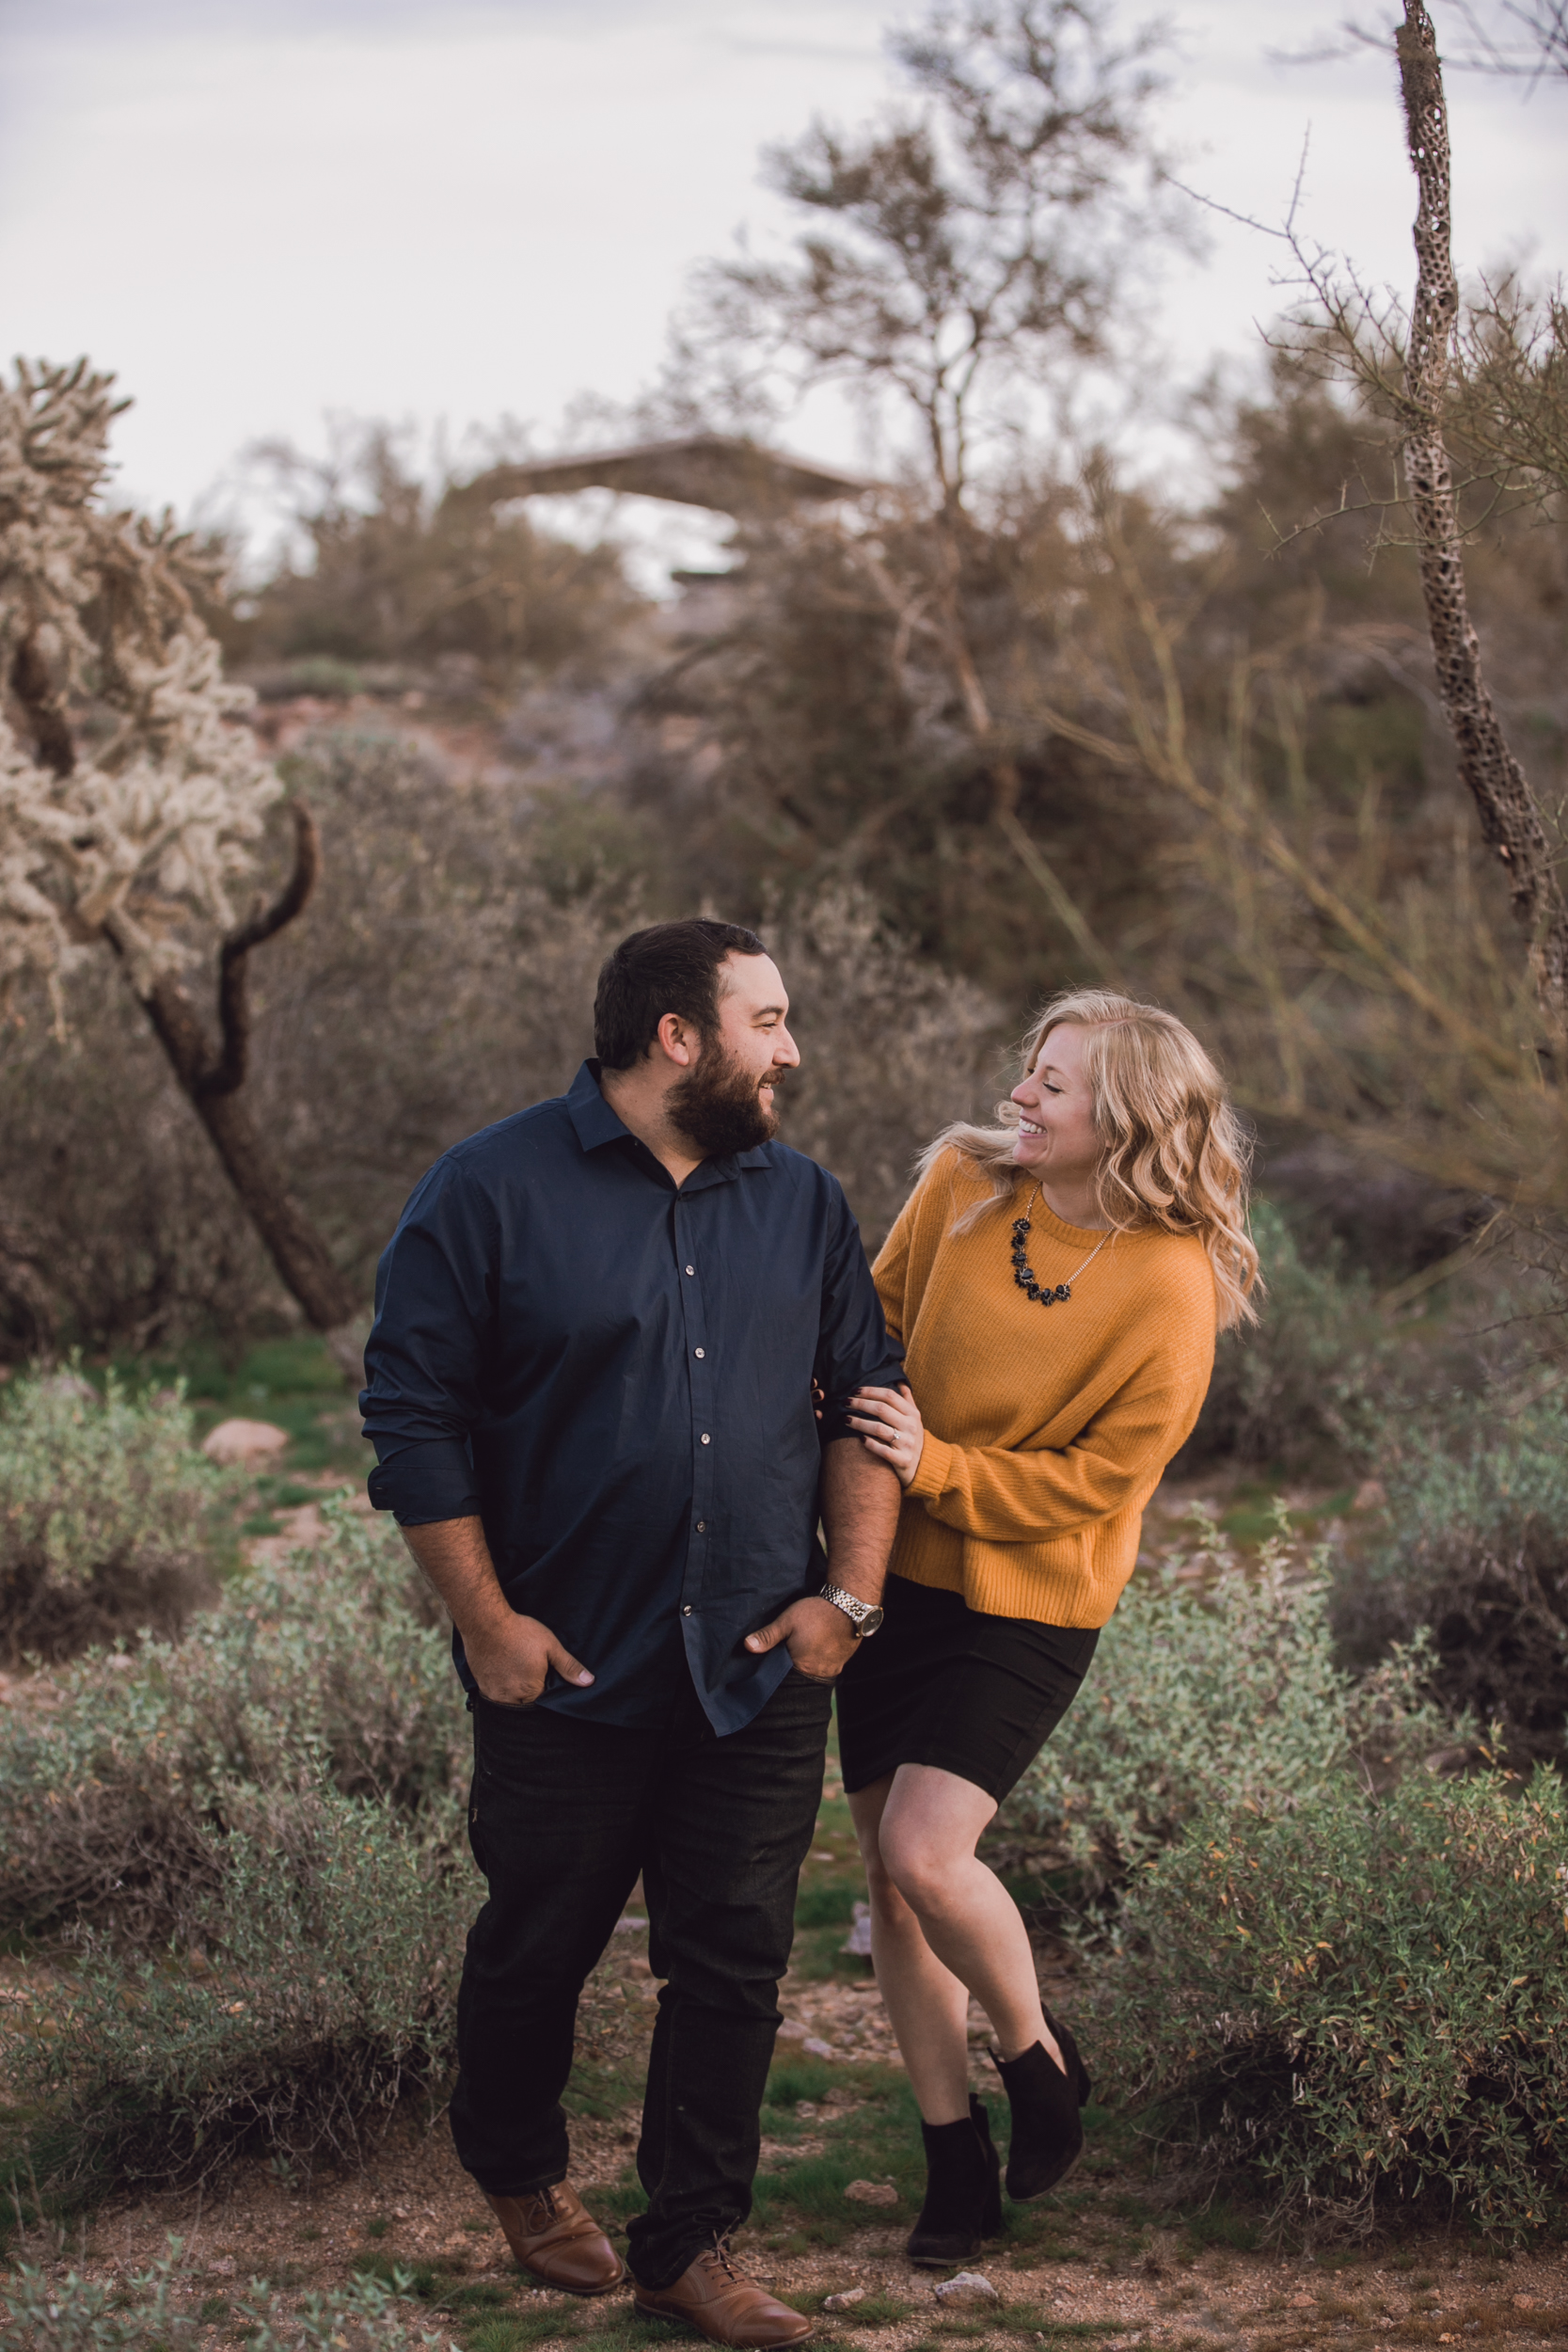 superstition mountain, superstition mountain engagement session, phoenix engagement session, arizona engagement photographer-16.jpg